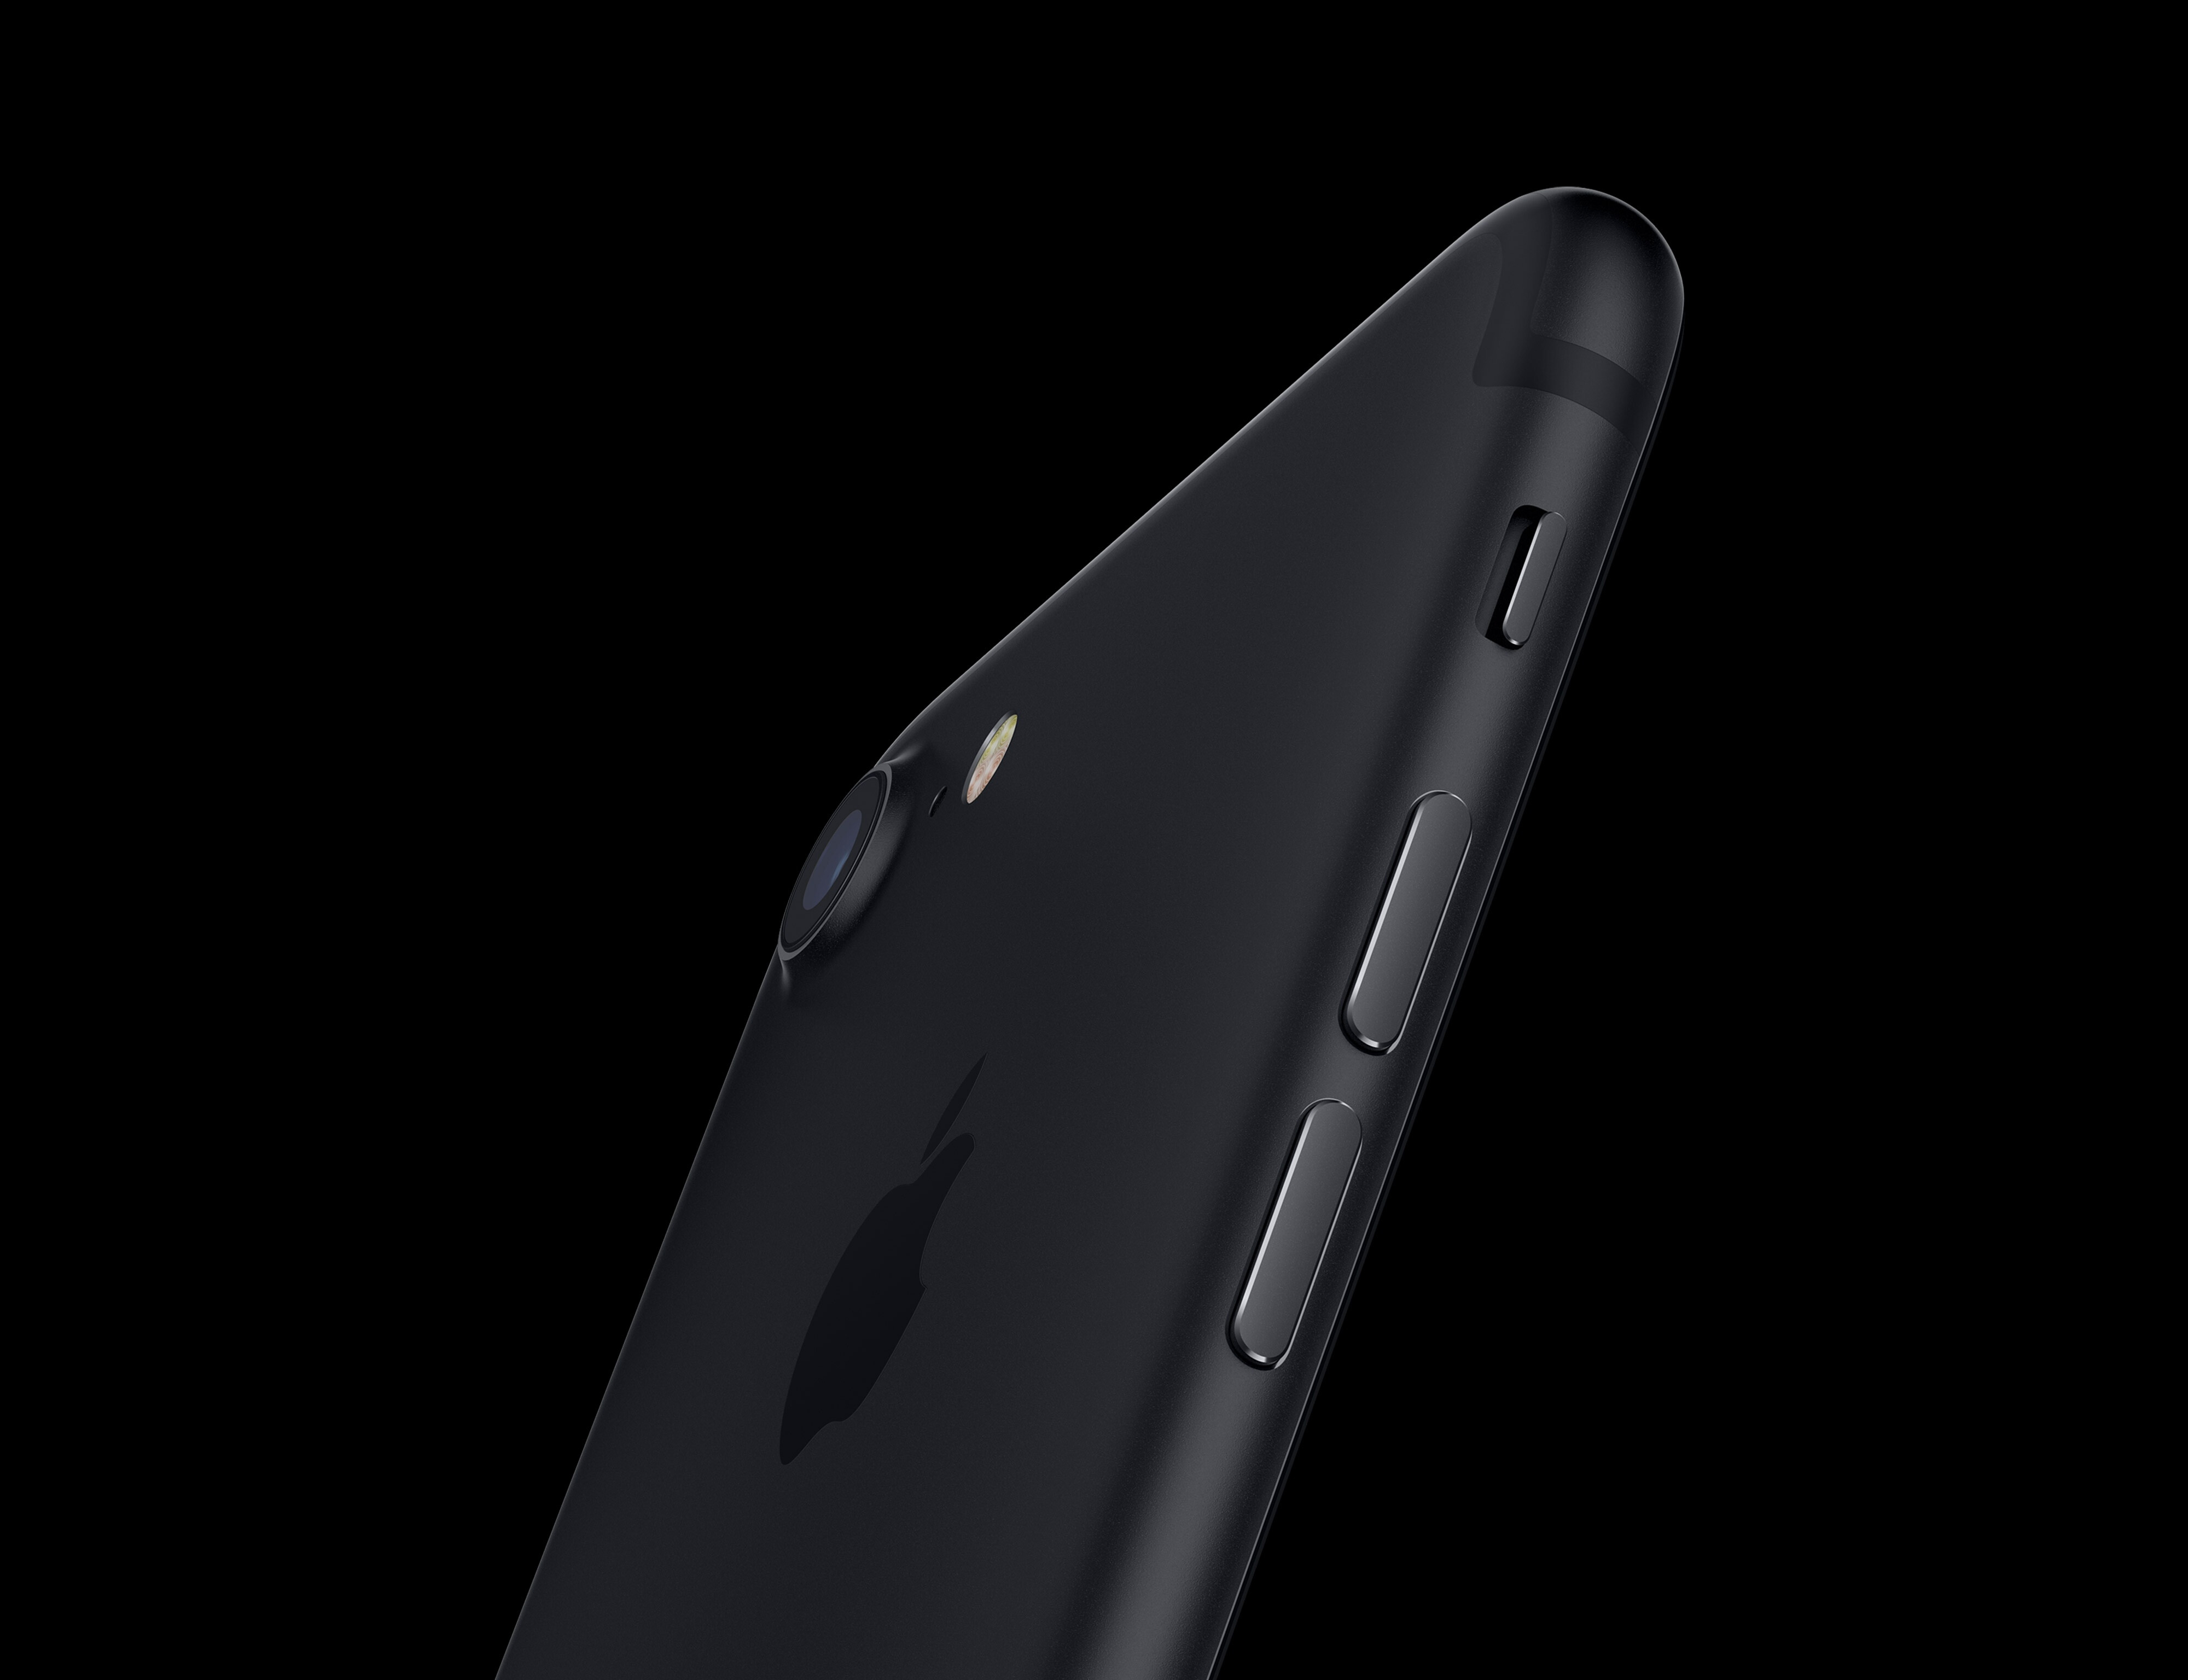 iPhone 7 Jet Black vs Black: what's the difference